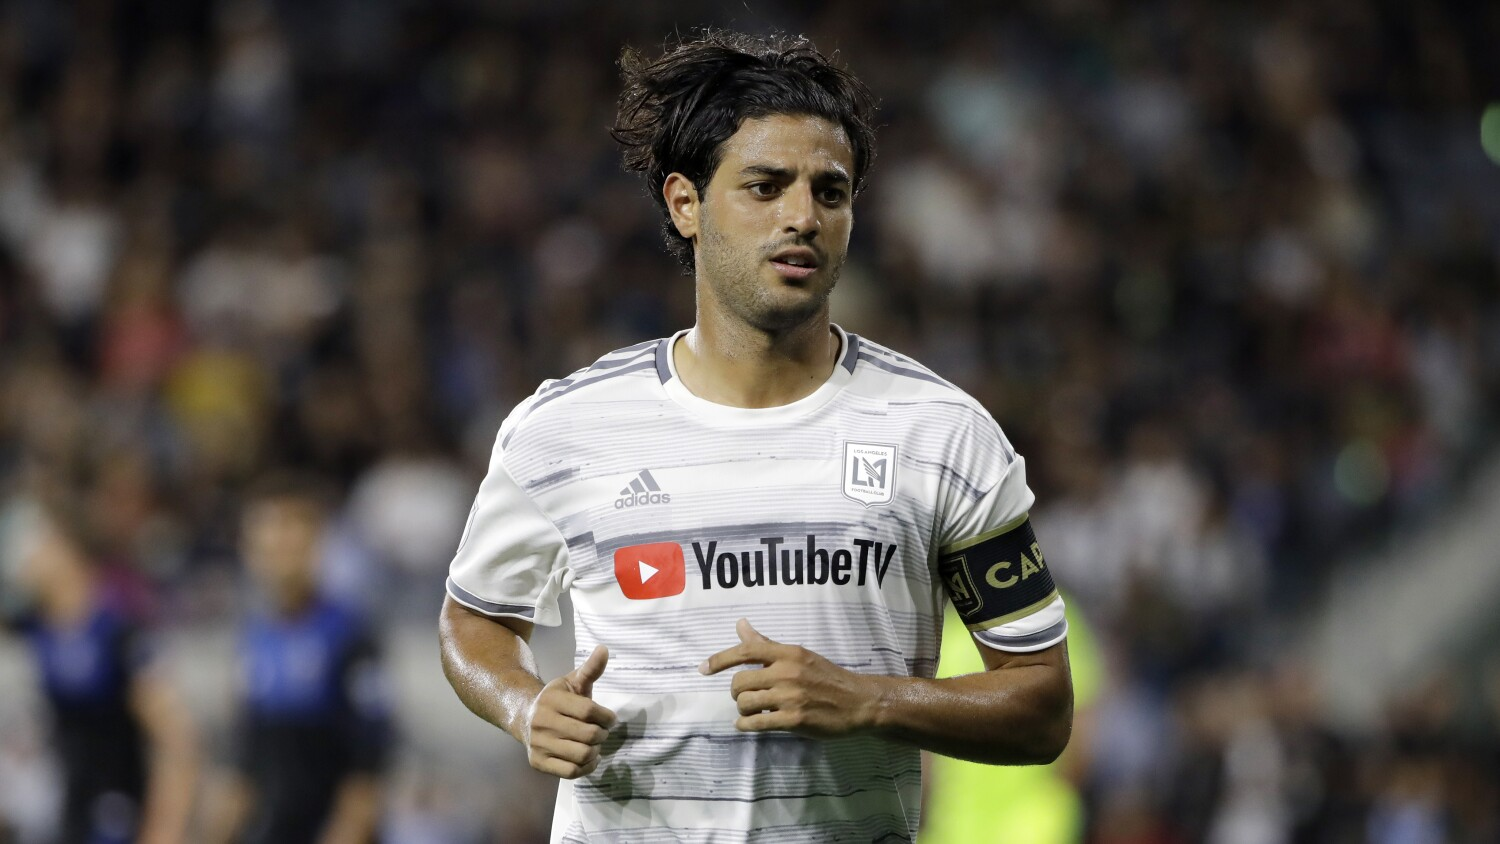 LAFC star Carlos Vela will not play in the MLS tournament in Orlando